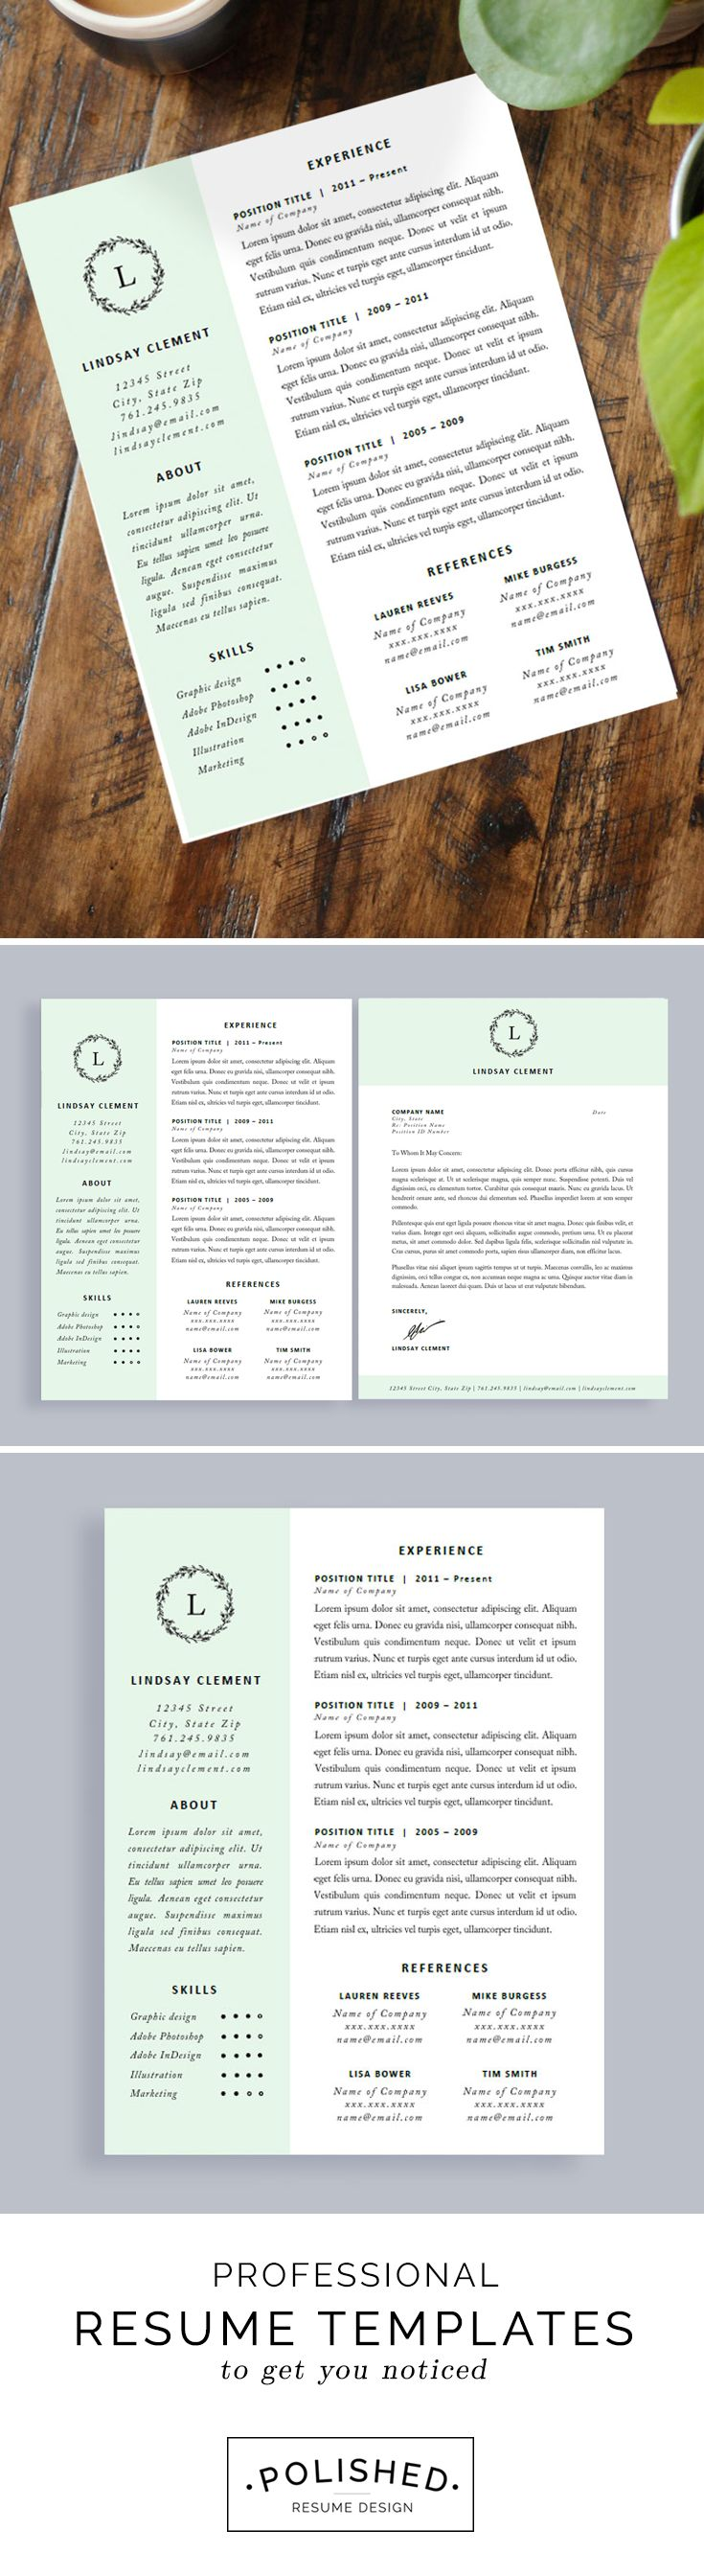 Word Cv Templates 2007%0A Professional resume templates for Microsoft Word  Features   and   page  options plus a free